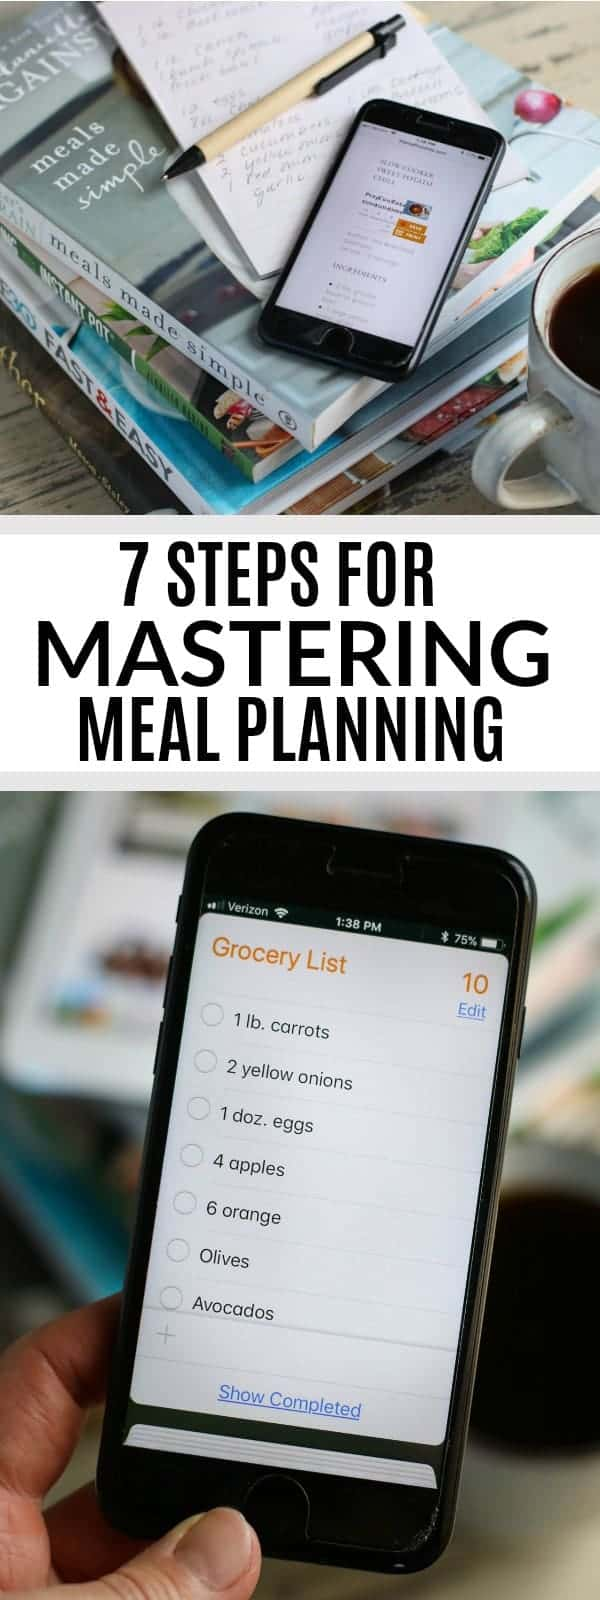 7 Steps for Mastering Meal Planning in 2018 | meal planning tips | meal planning made easy | how to meal plan | meal planning ideas | healthy meal planning tips || The Real Food Dietitians #mealplanning #healthymealplanning #mealplanningtips